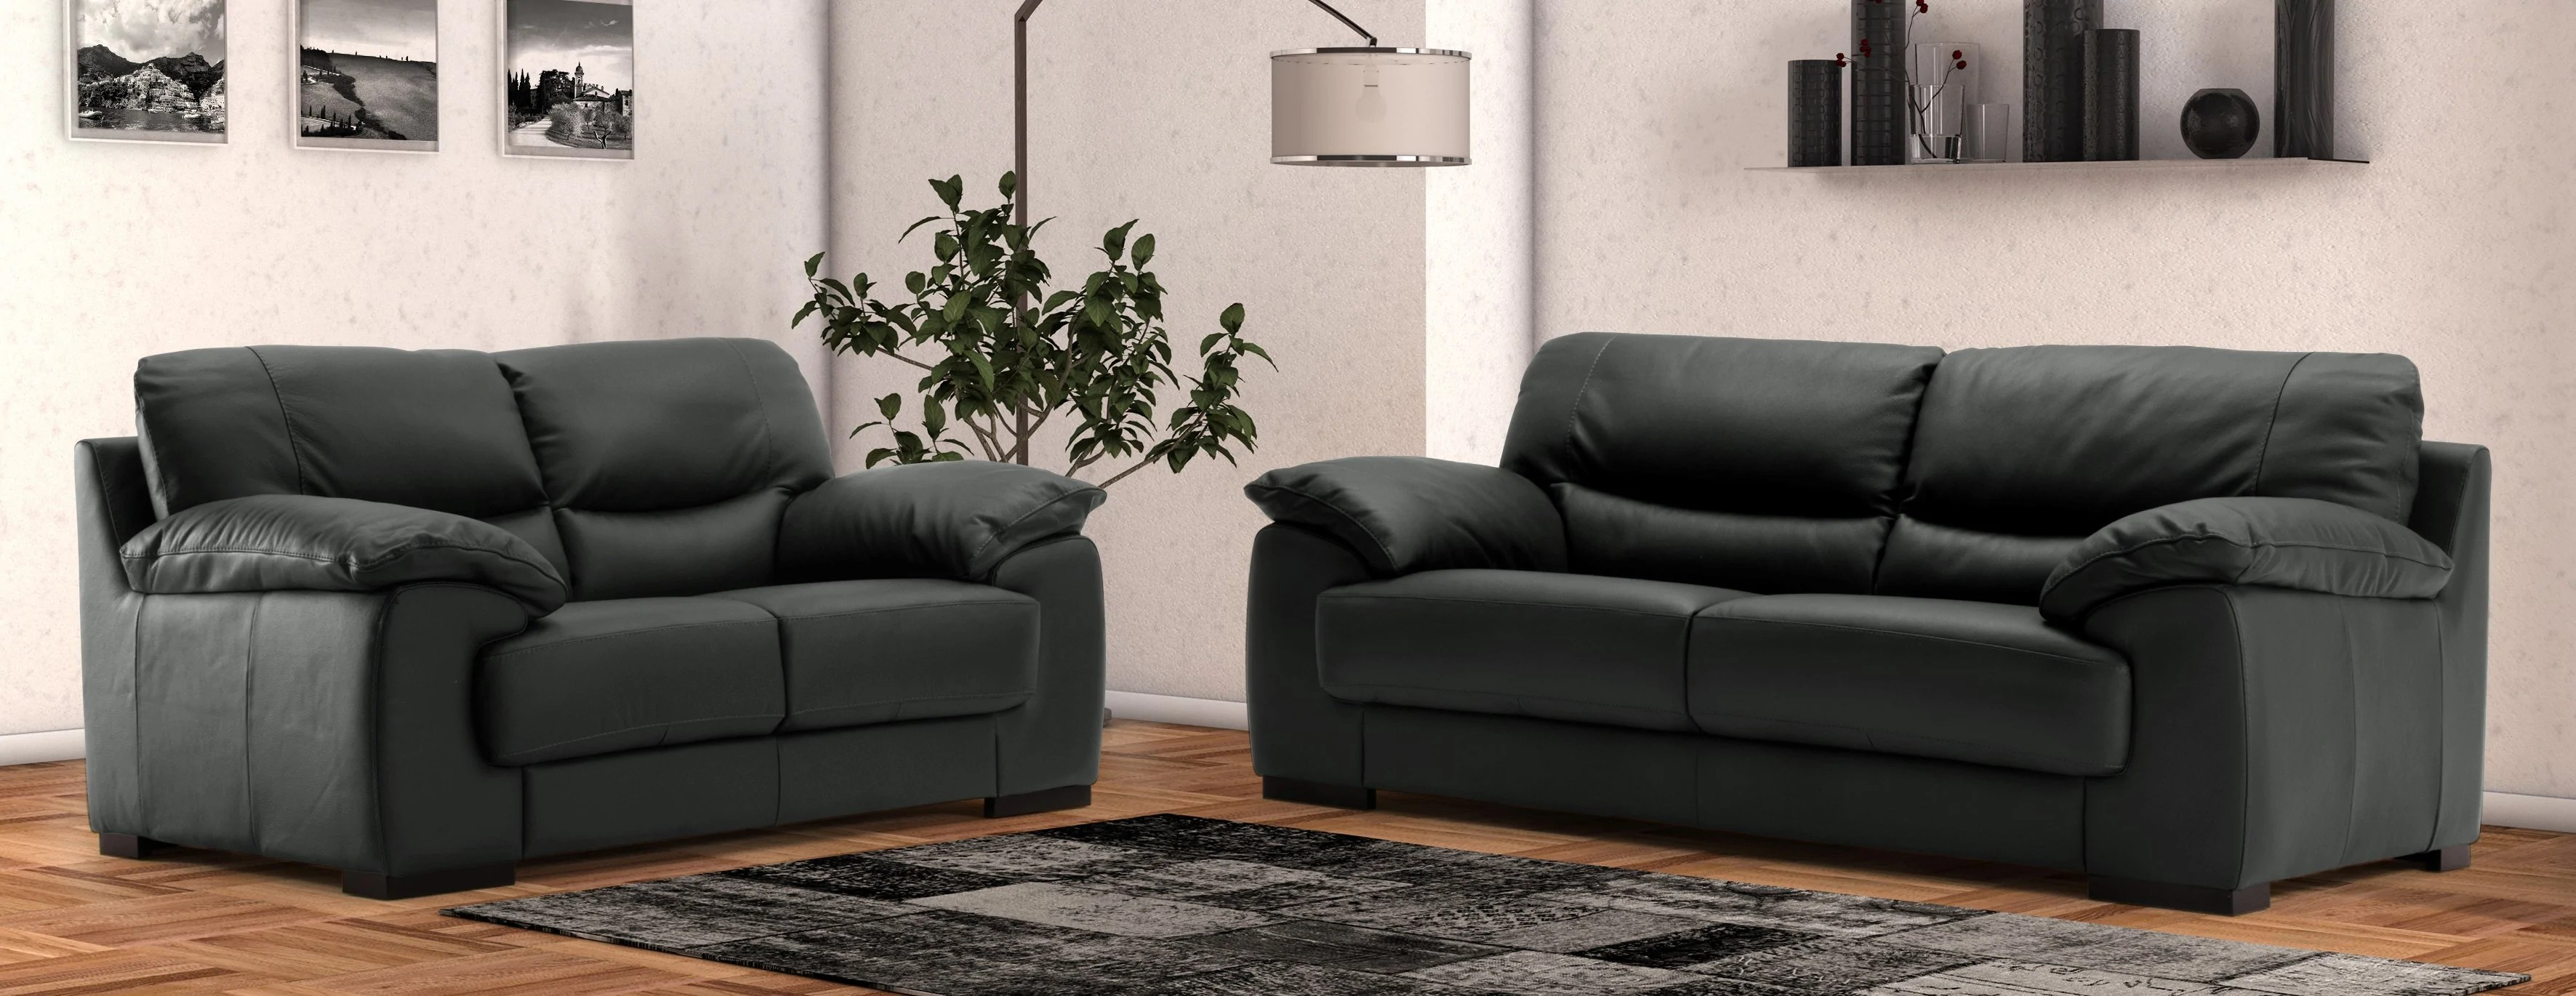 Sofa Sets In Doncaster Kc Sofas - Italian Sofas Sheffield